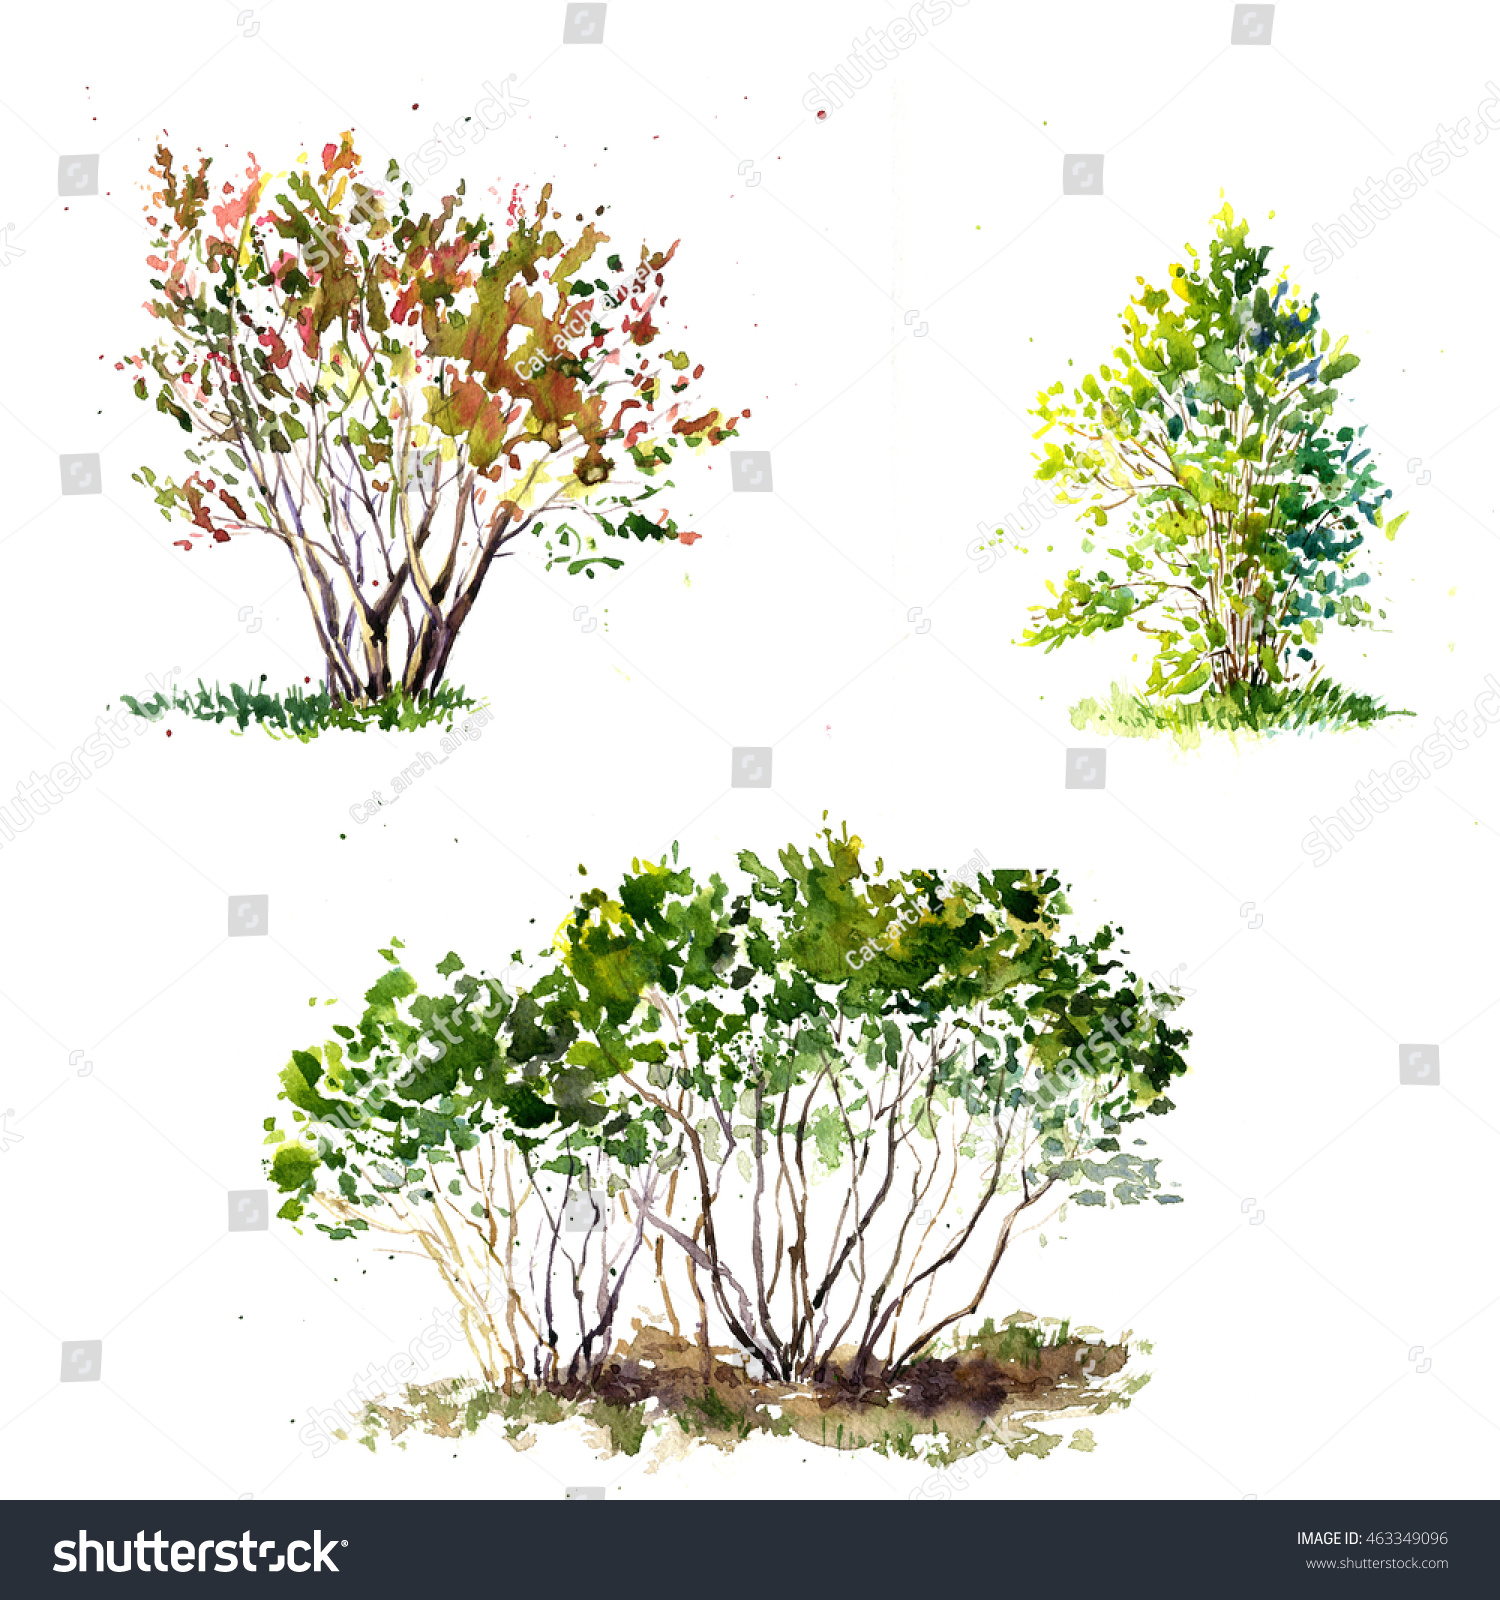 Set Green Bushes Drawing By Watercolor Stock Illustration 463349096 ... for Tree Drawing With Watercolor  143gtk